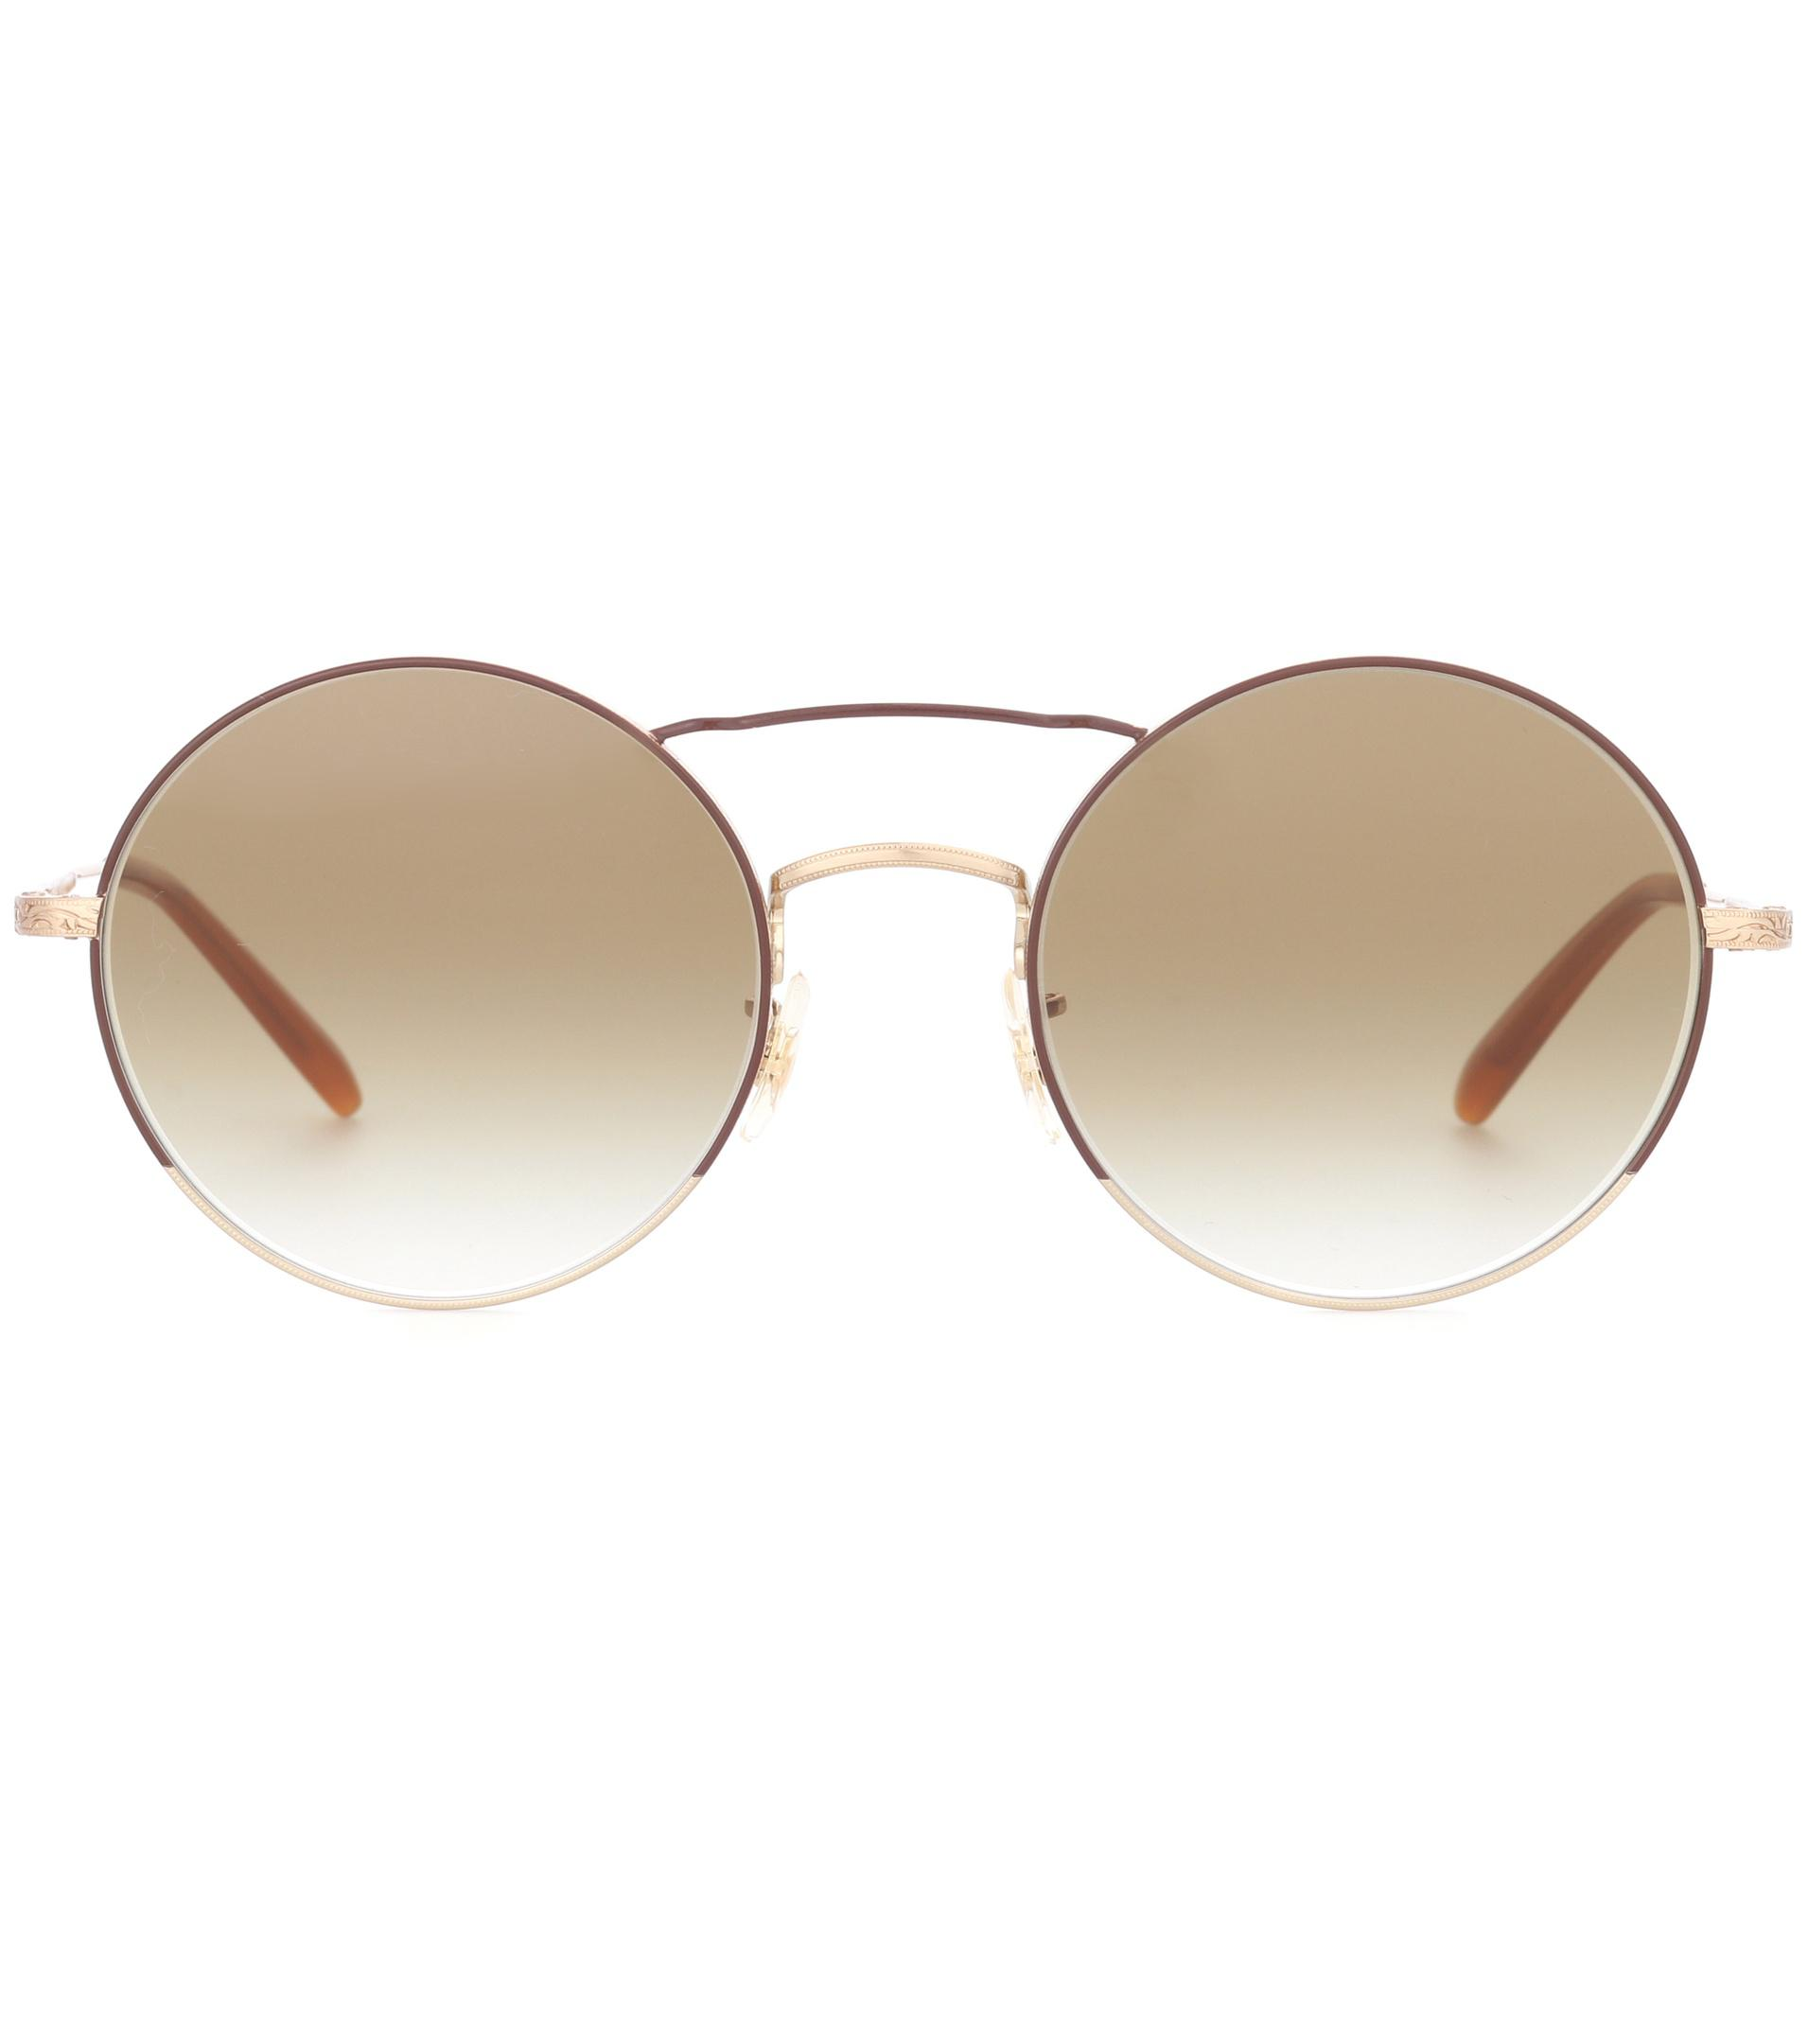 447c2fae6cf Oliver Peoples Nickol Round Sunglasses - Lyst